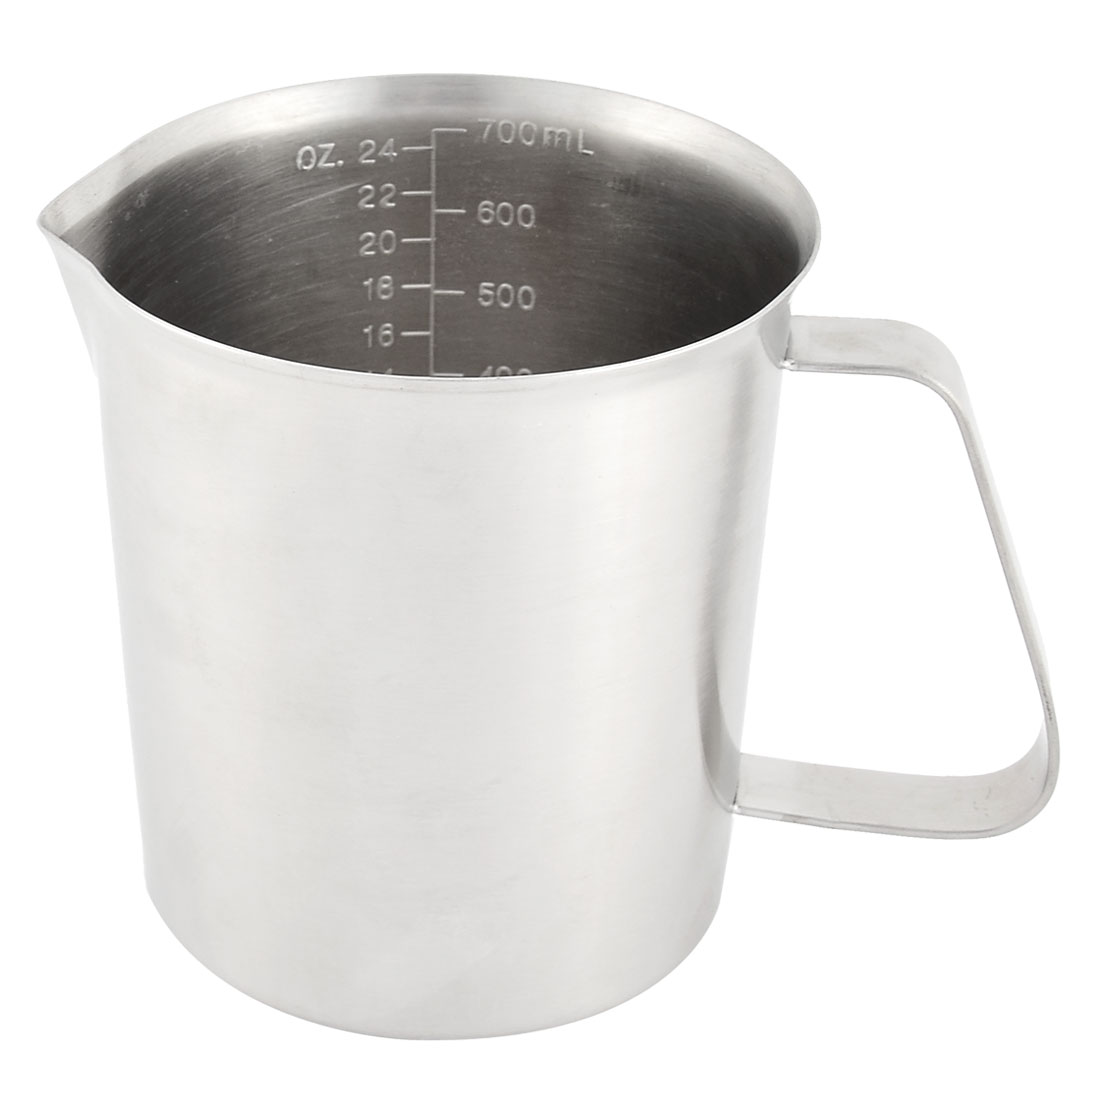 Kitchen Stainless Steel Water Oil Liquid Milk Flour Measuring Cup Mug Silver Tone 700ml